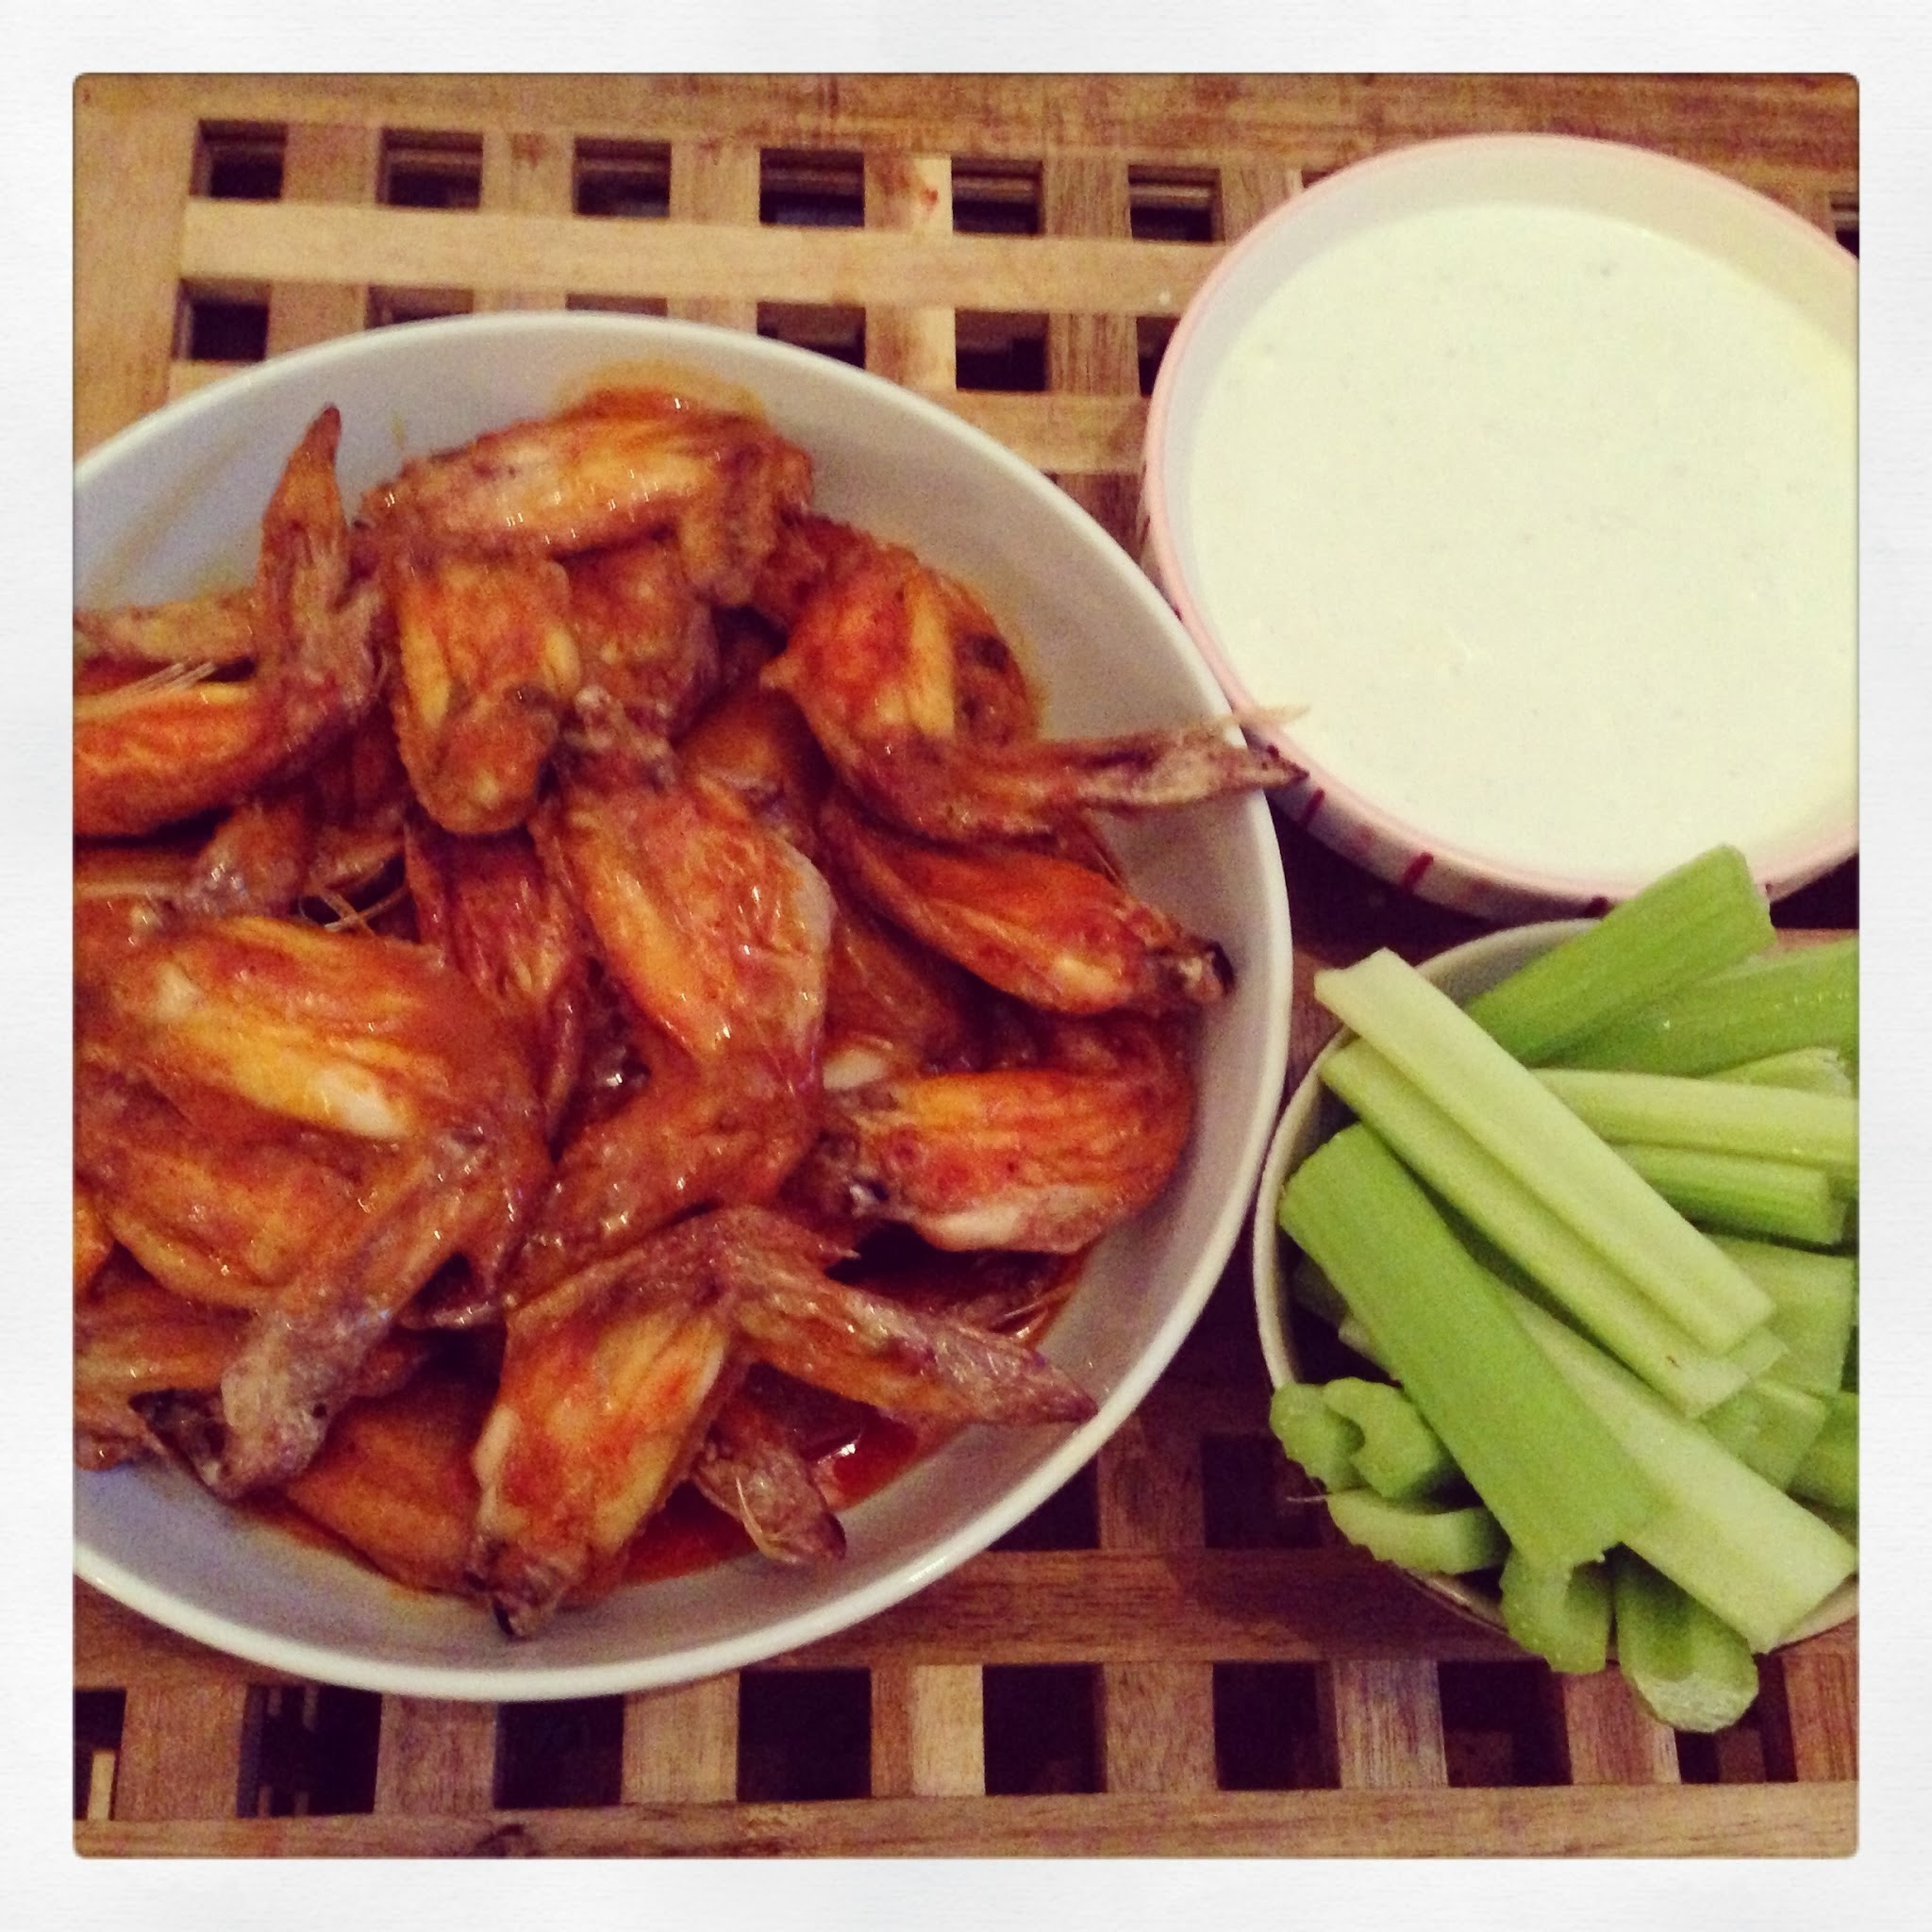 Throwback Thursday: Buffalo wings & blue cheese dip